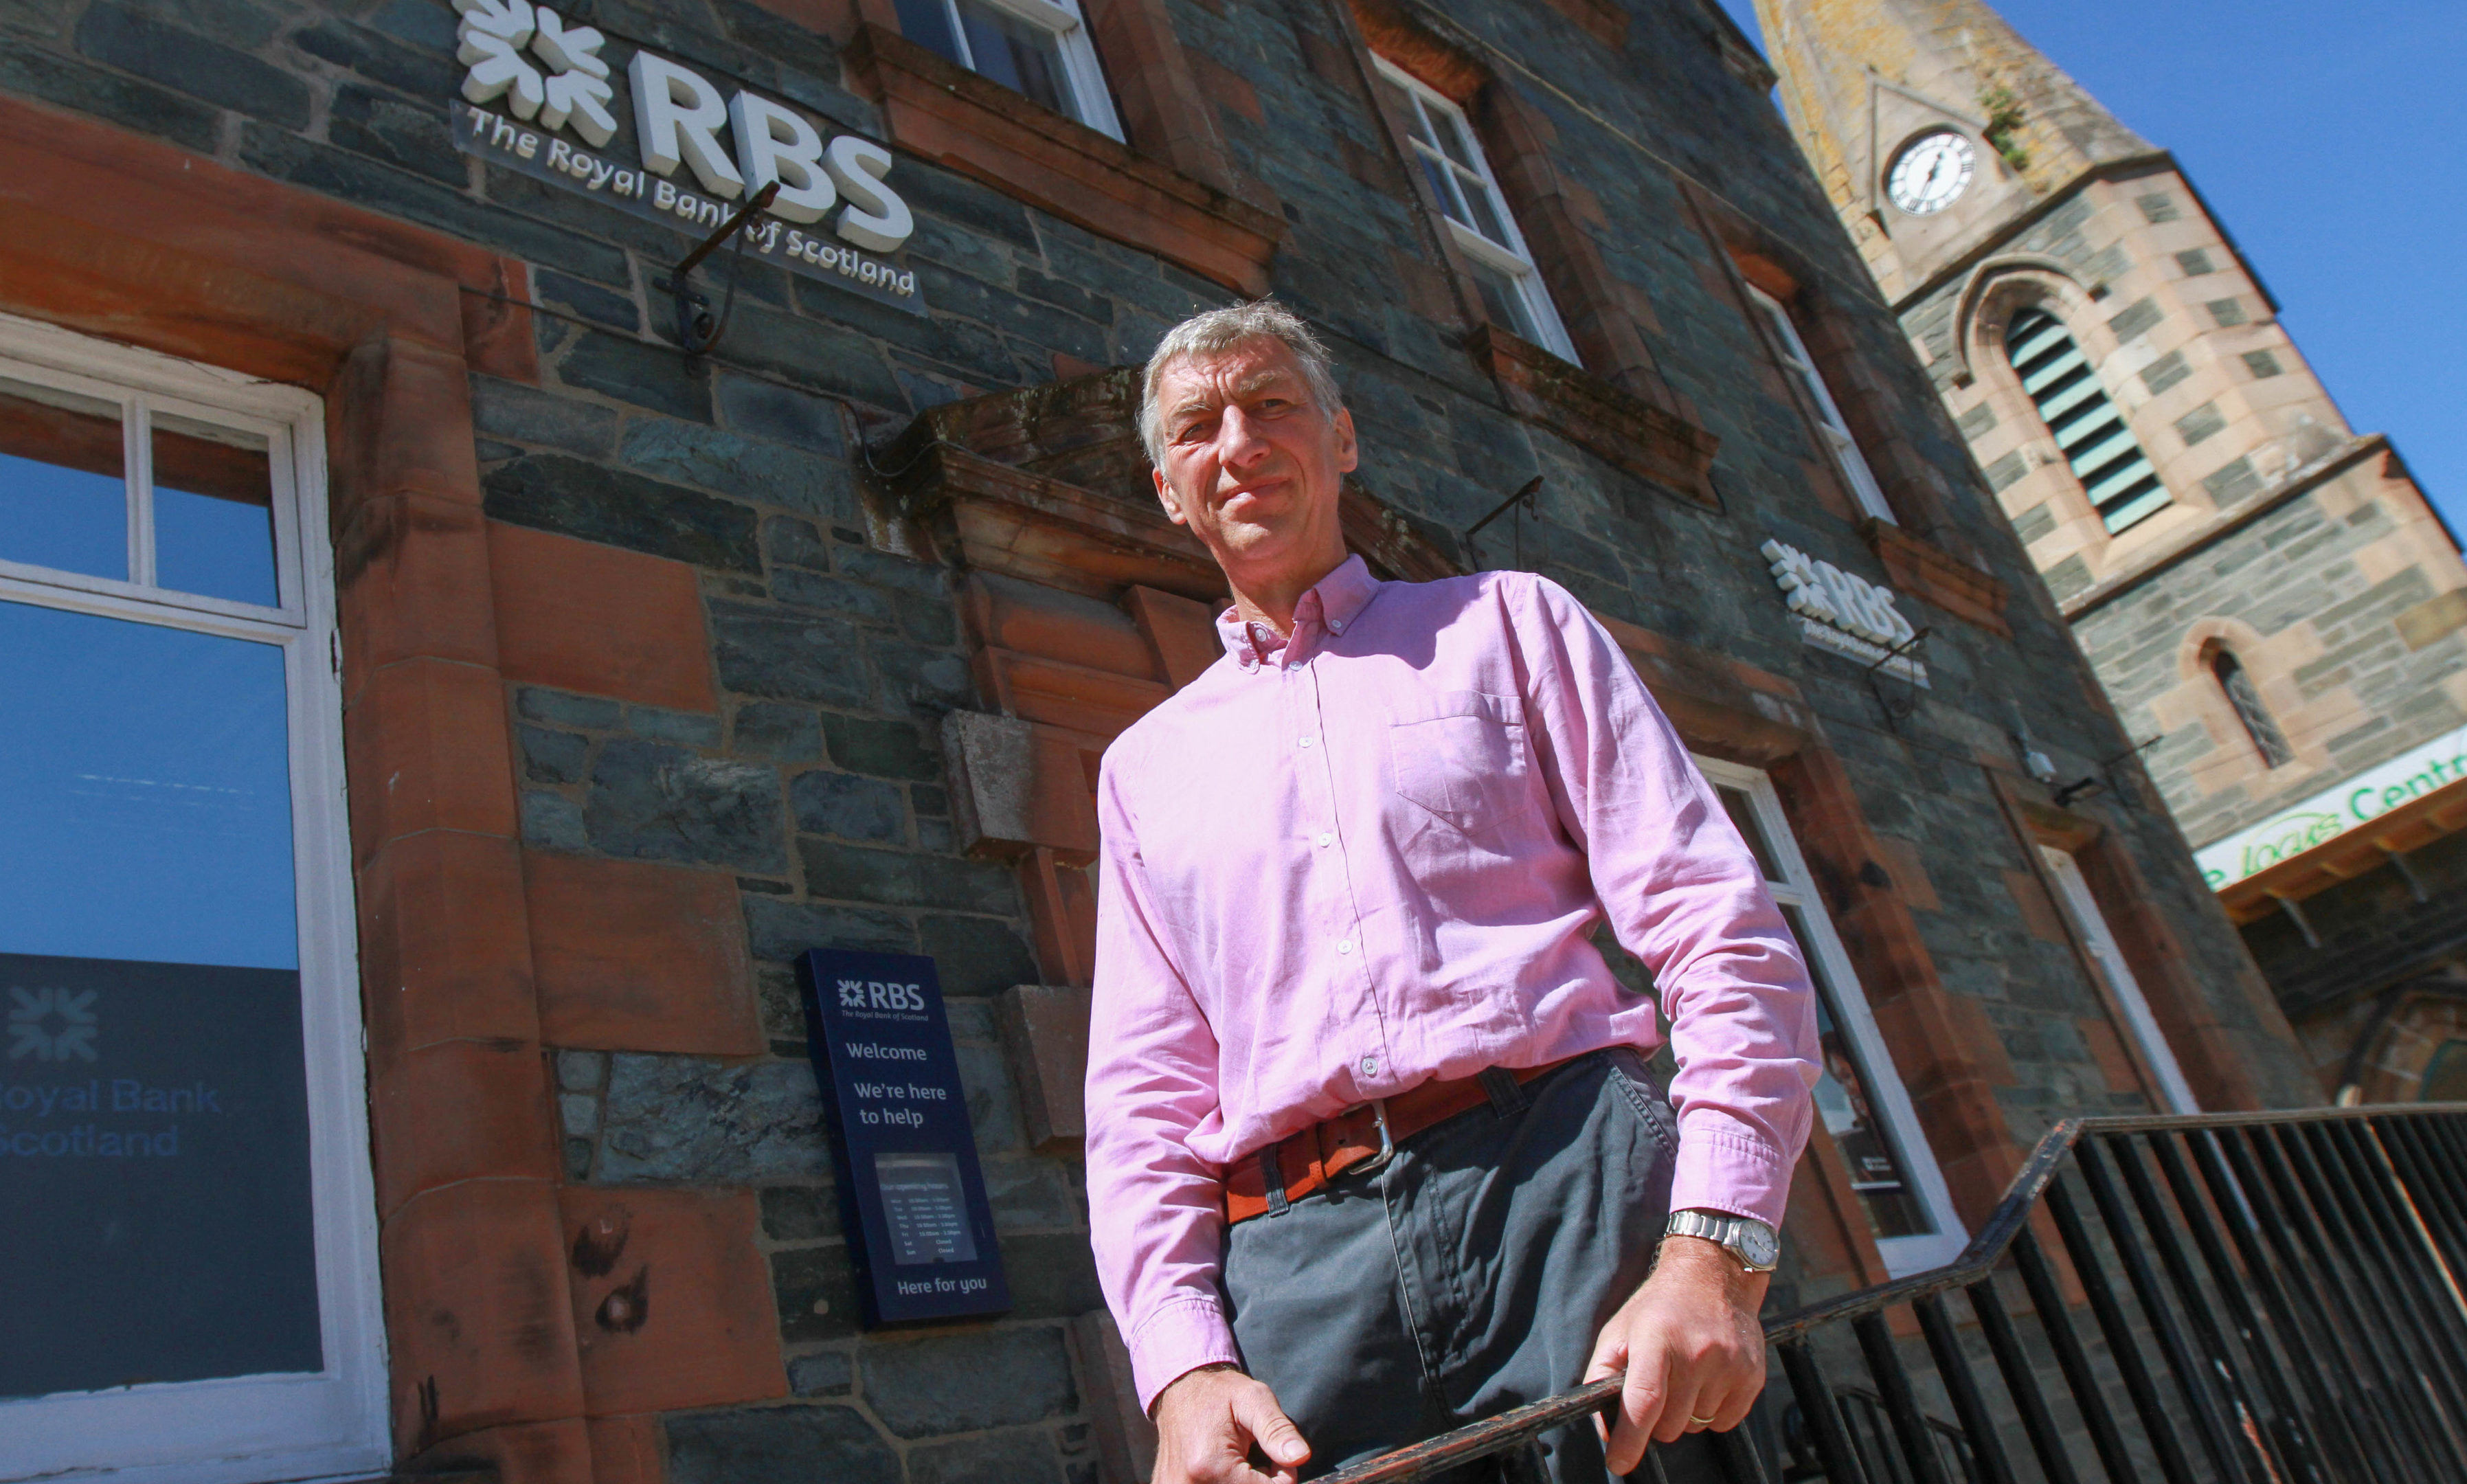 Councillor Mike Williamson outside the closed RBS branch in Aberfeldy